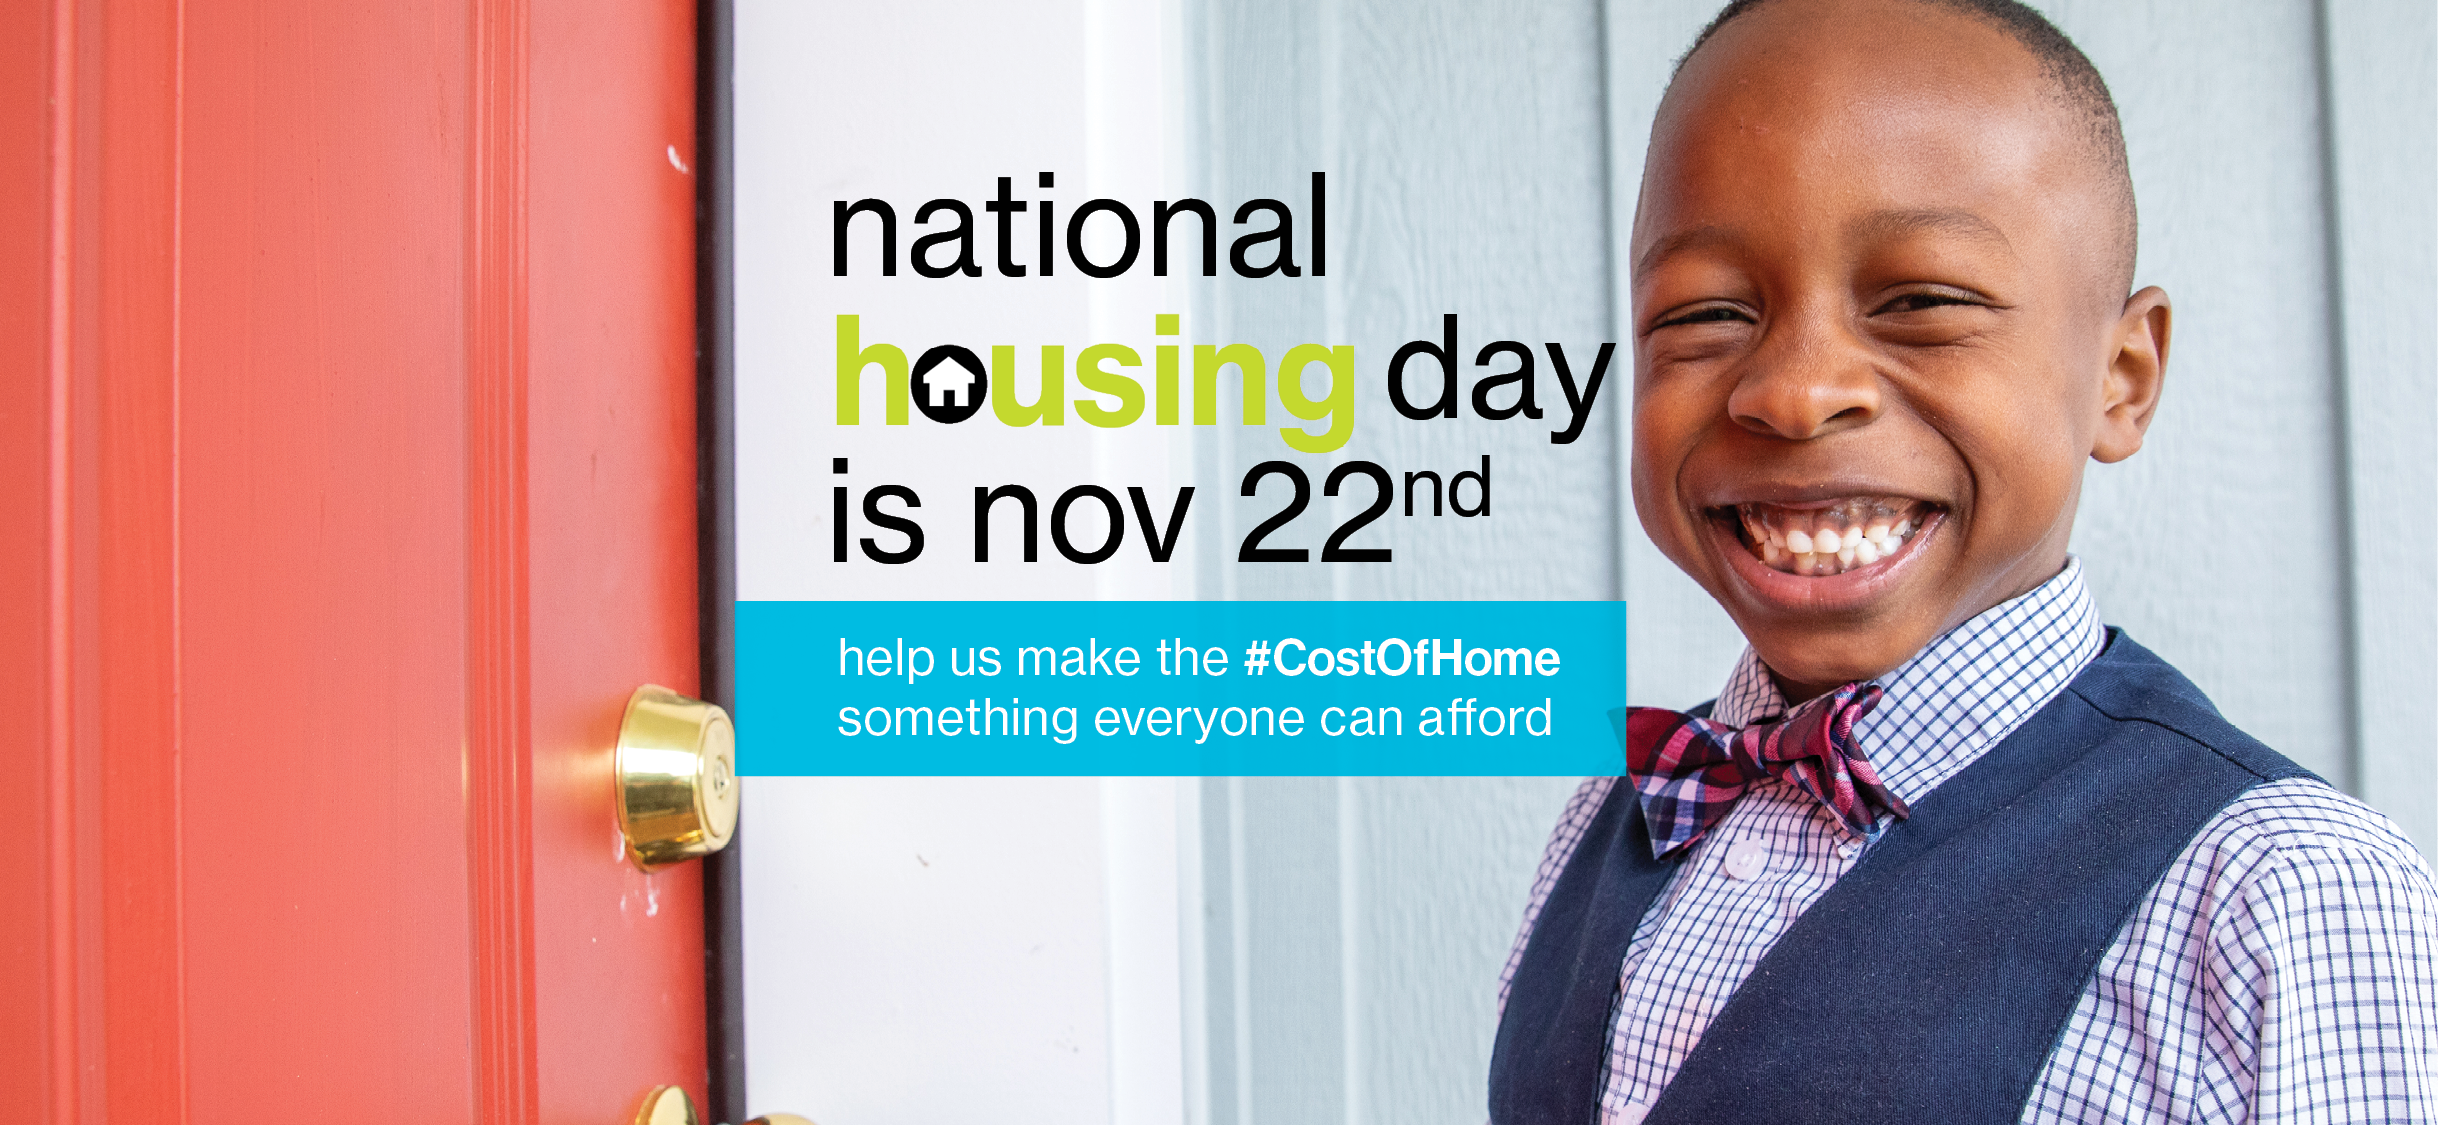 National Housing Day and the Cost of Home Campaign